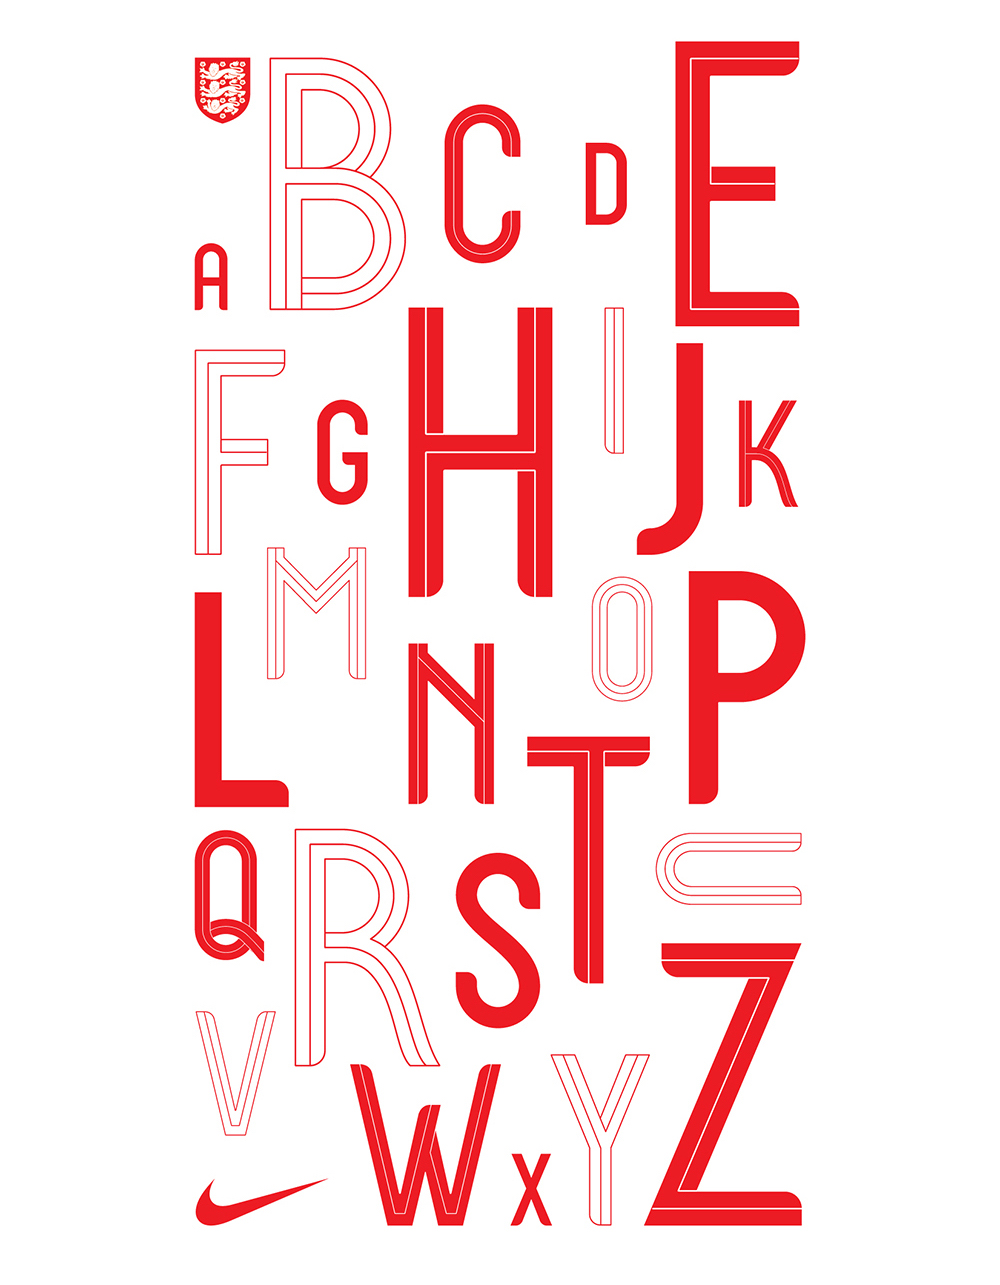 His Beautiful Bespoke Typeface For Englands 2018 World Cup Kit Pays Homage To English Iconography And Classic Typefaces